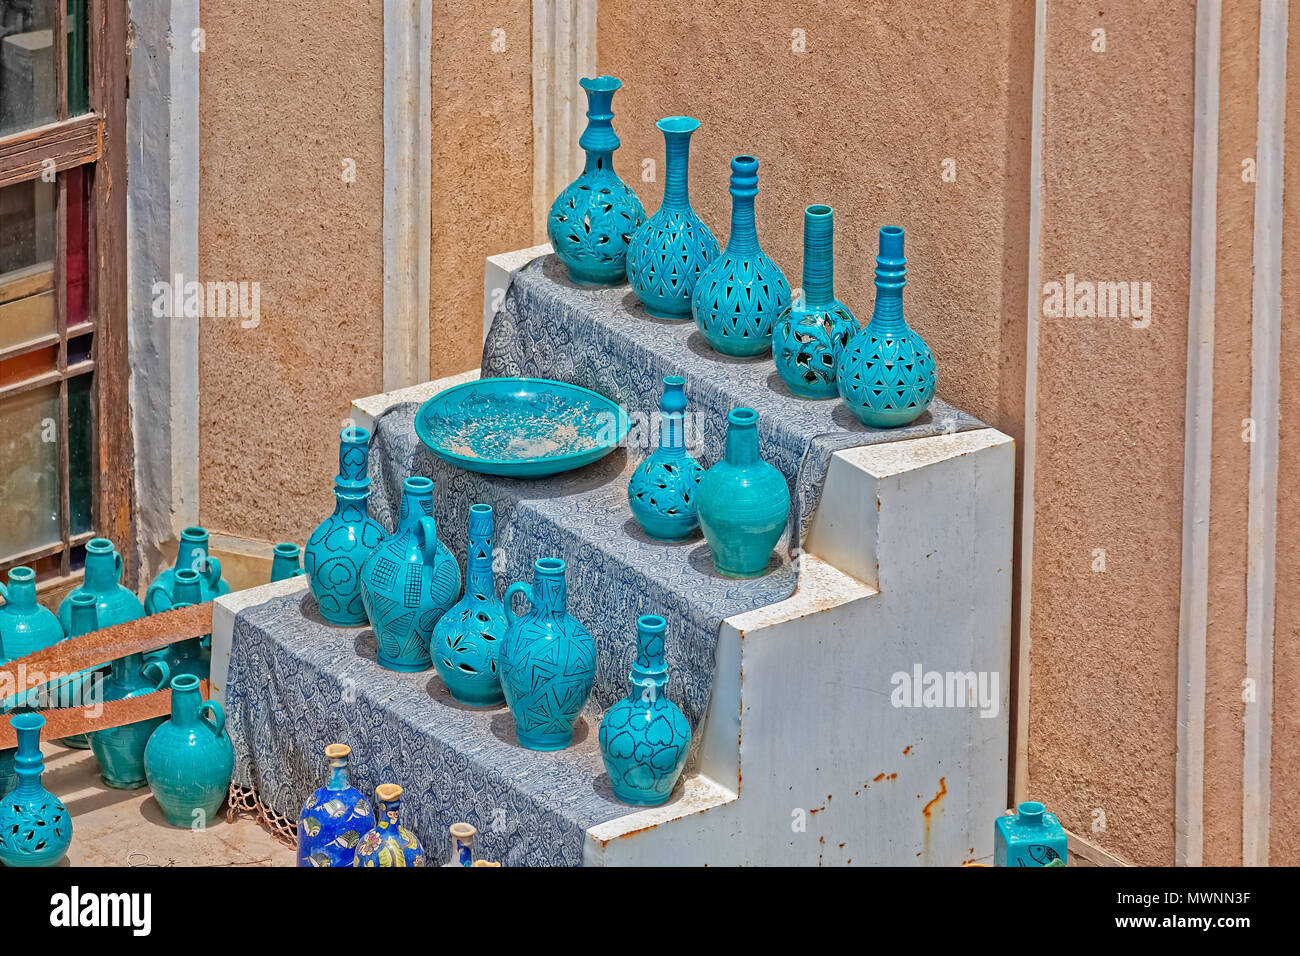 Clay turquoise vases - Stock Image